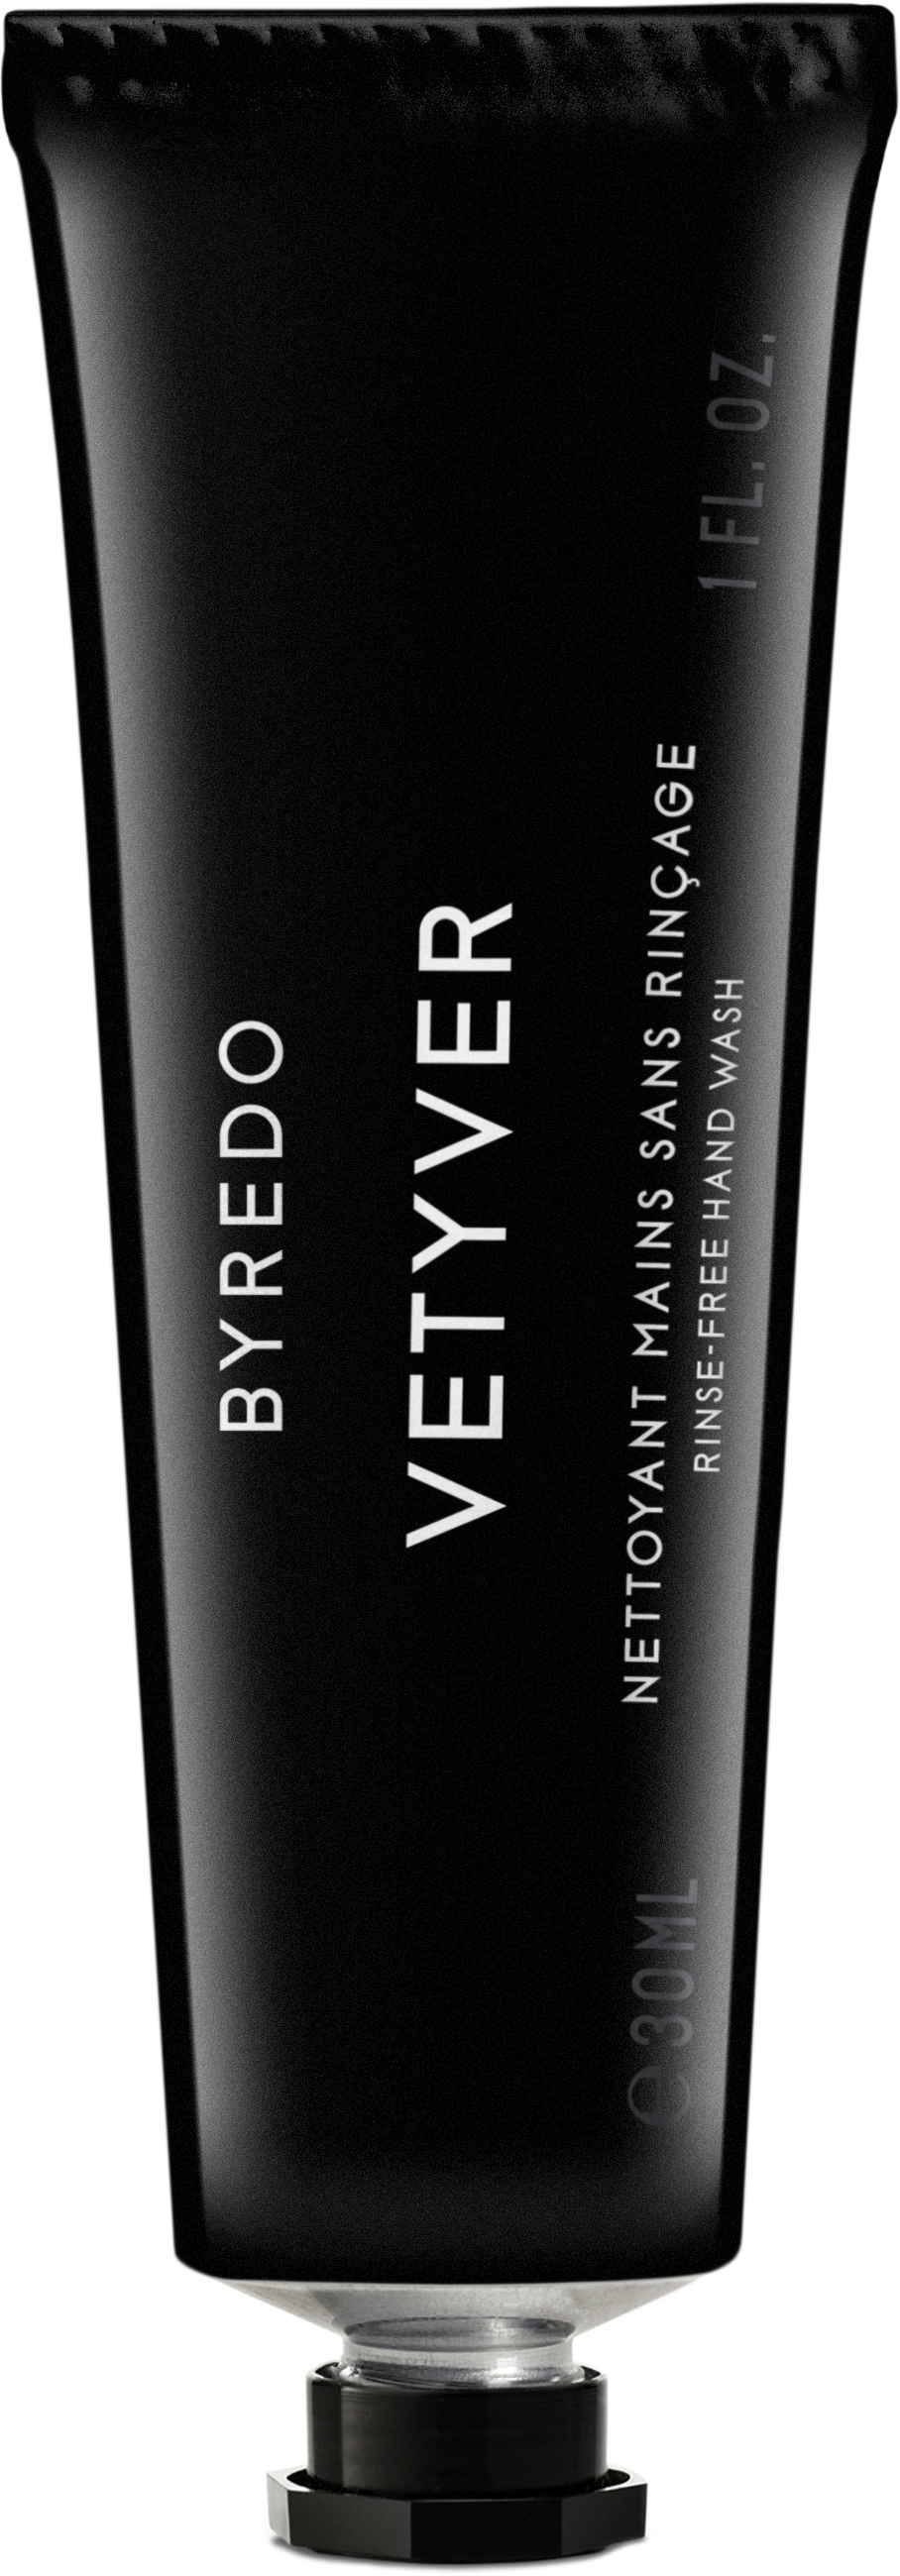 Byredo VETYVER RINSE-FREE HAND WASH, Available at Byredo